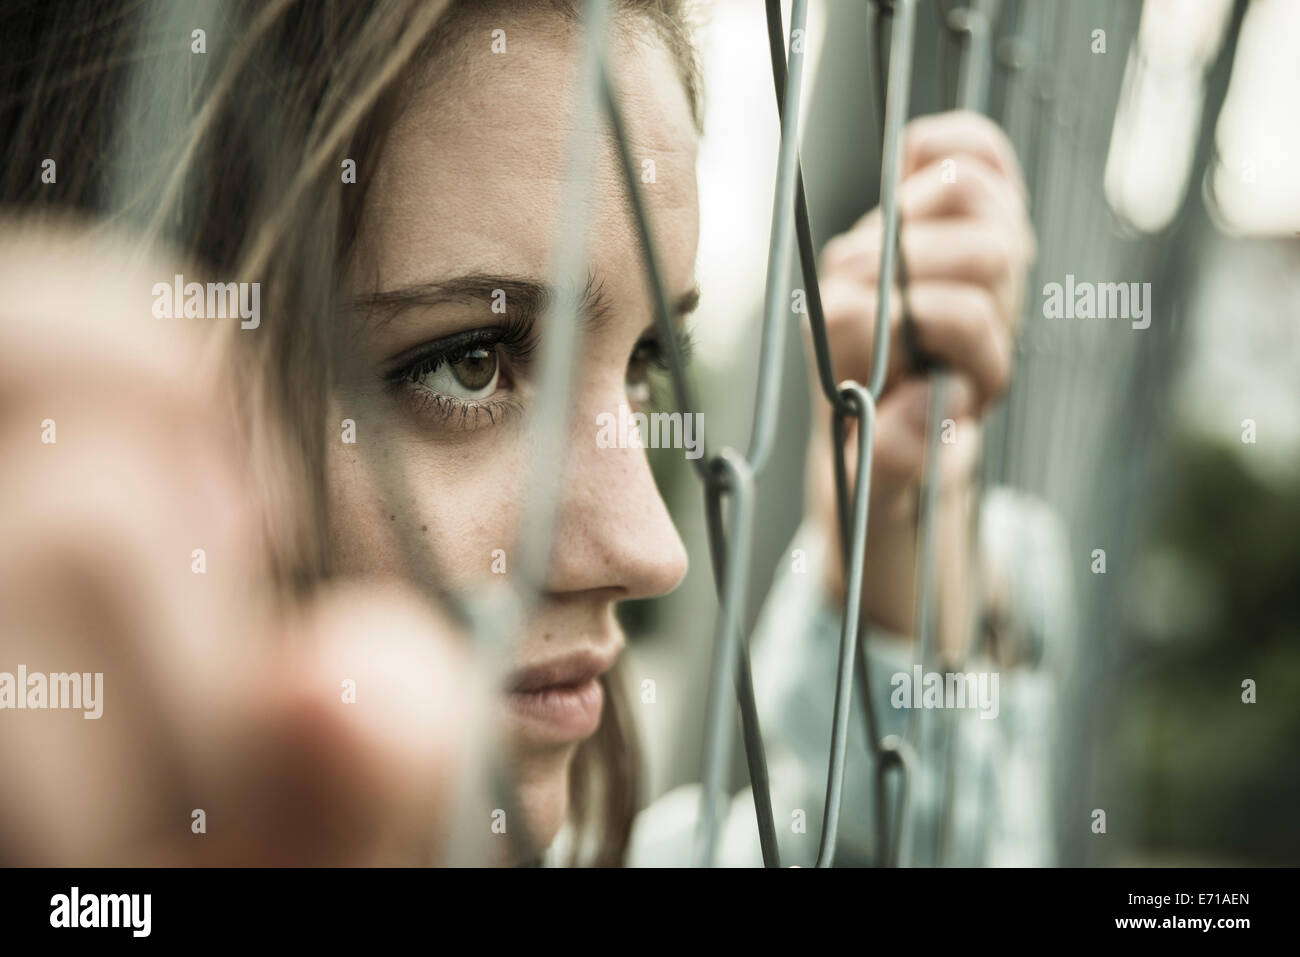 Teenage girl looking through a wire fence - Stock Image